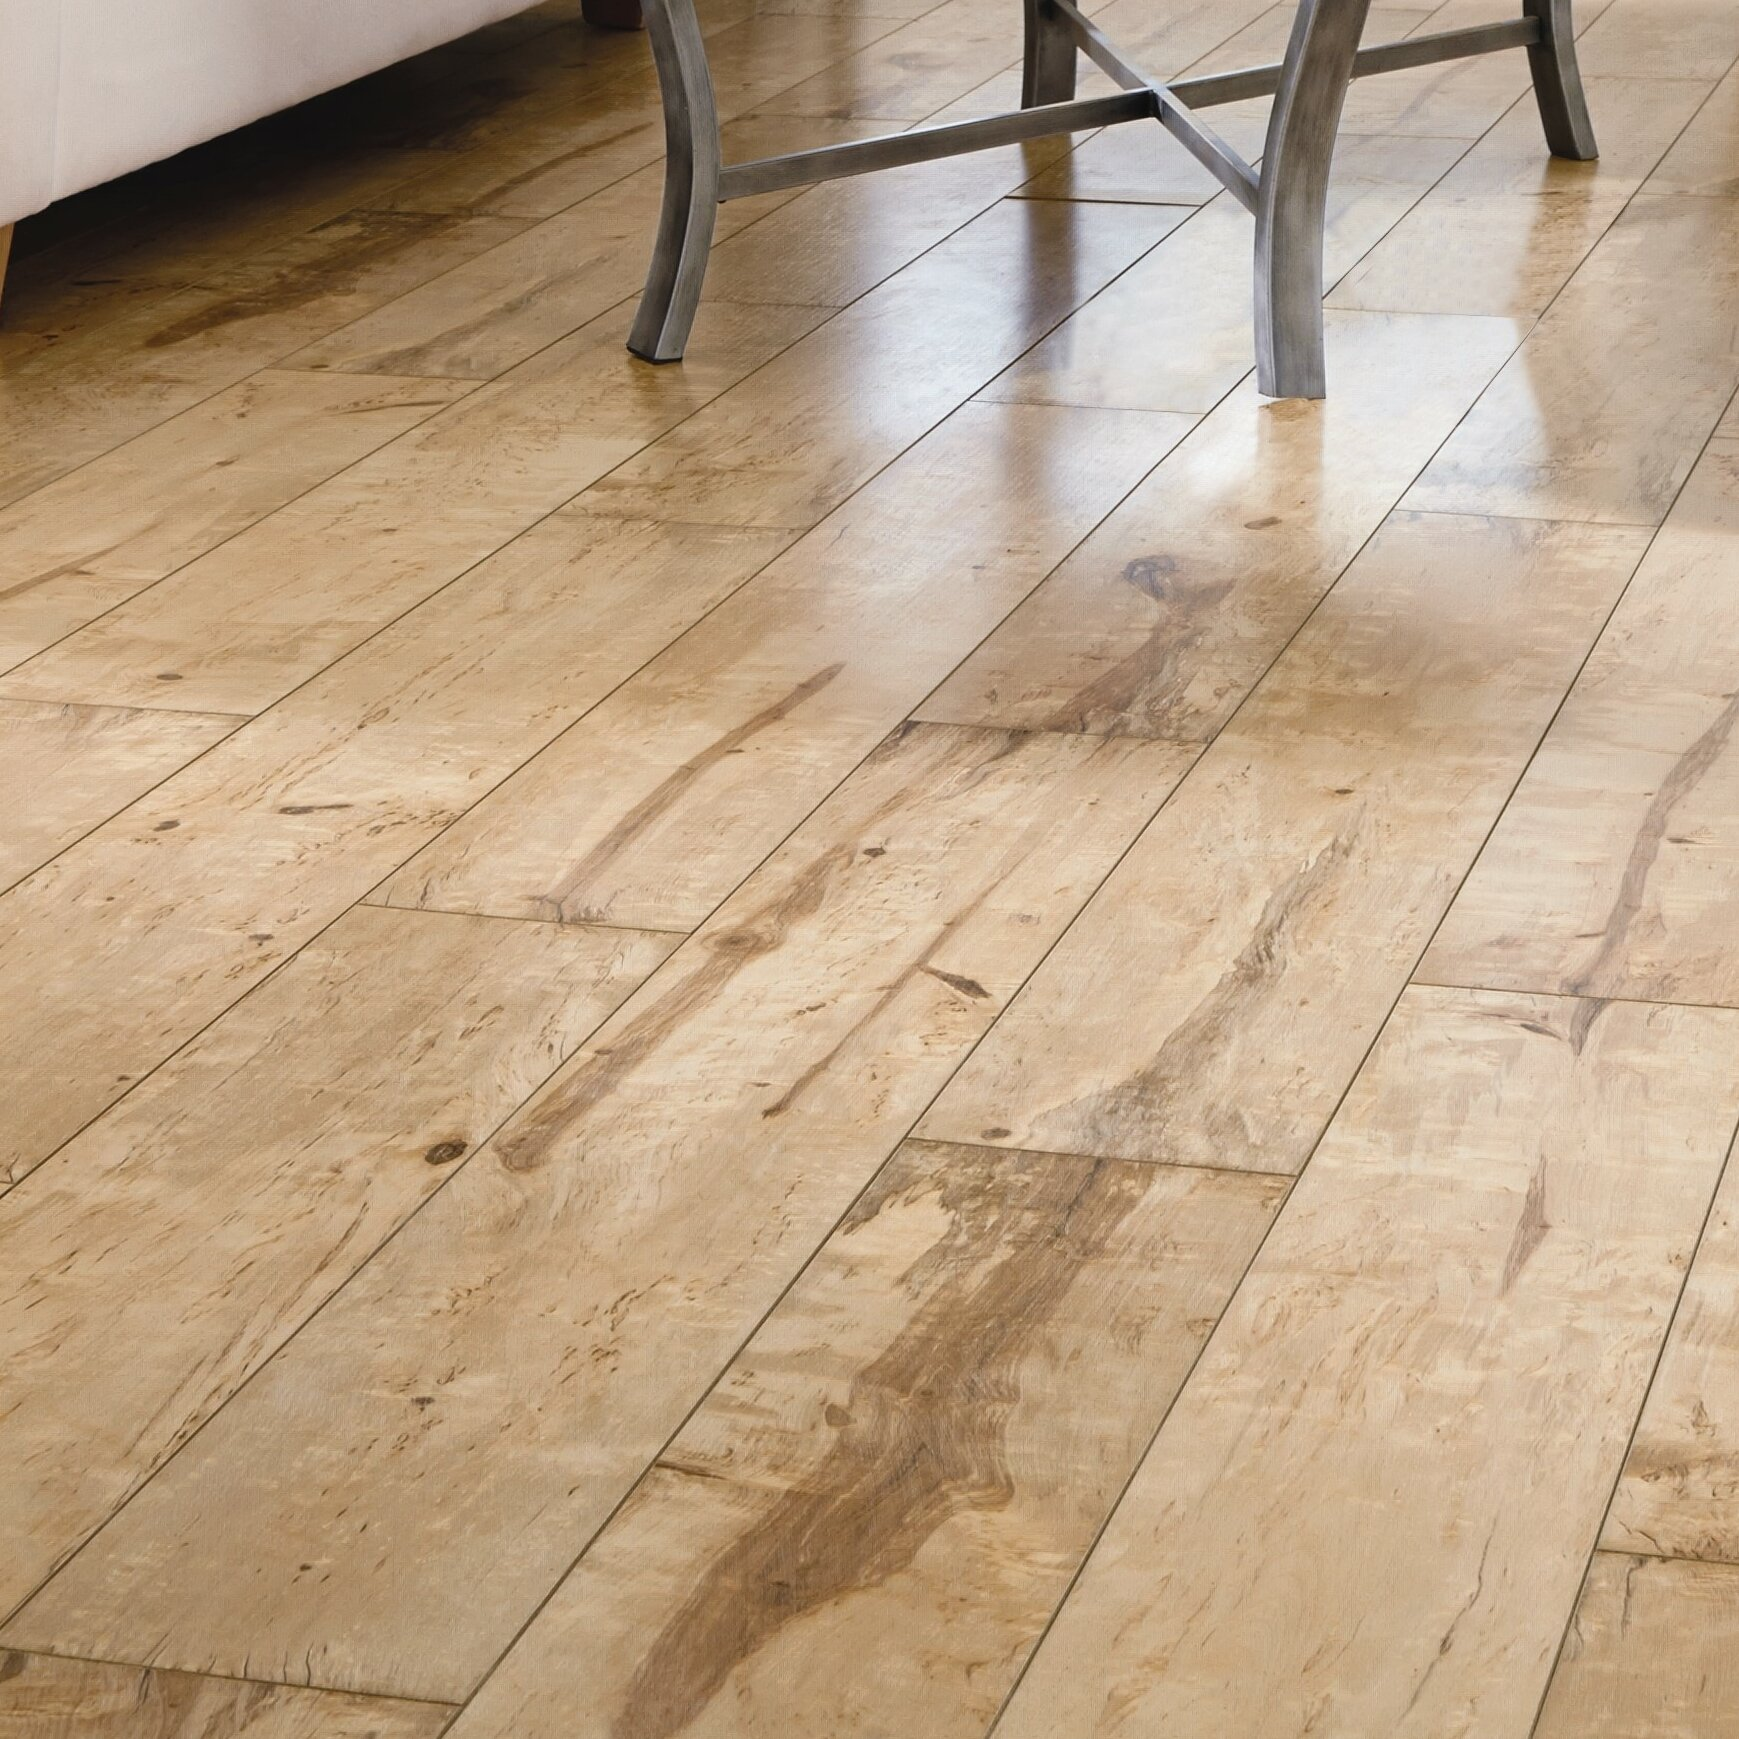 Mannington restoration wide plank 8 x 51 x 12mm for Mannington laminate flooring